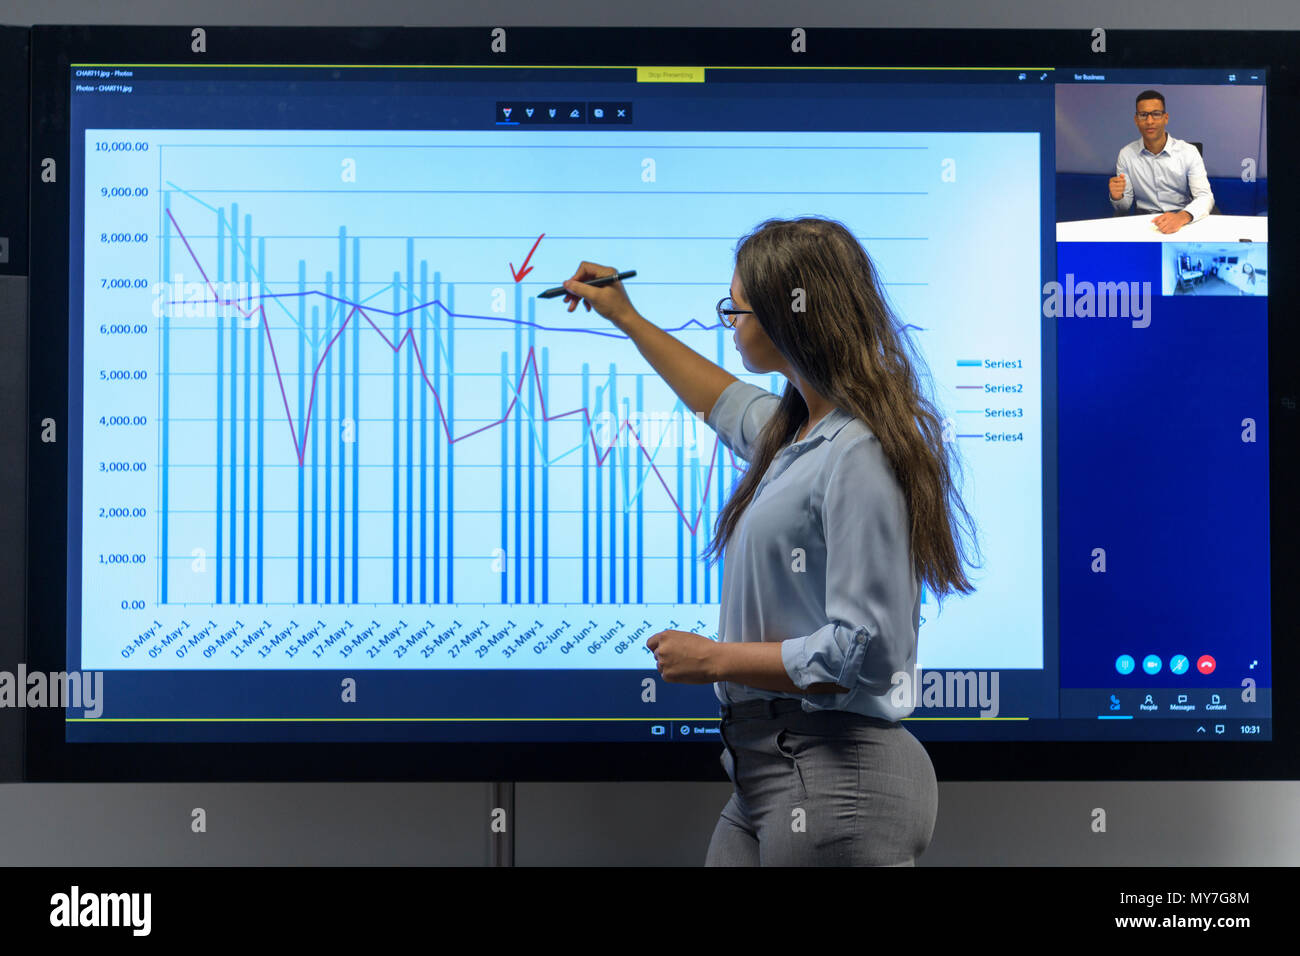 Woman drawing on graph in business meeting with video conference - Stock Image